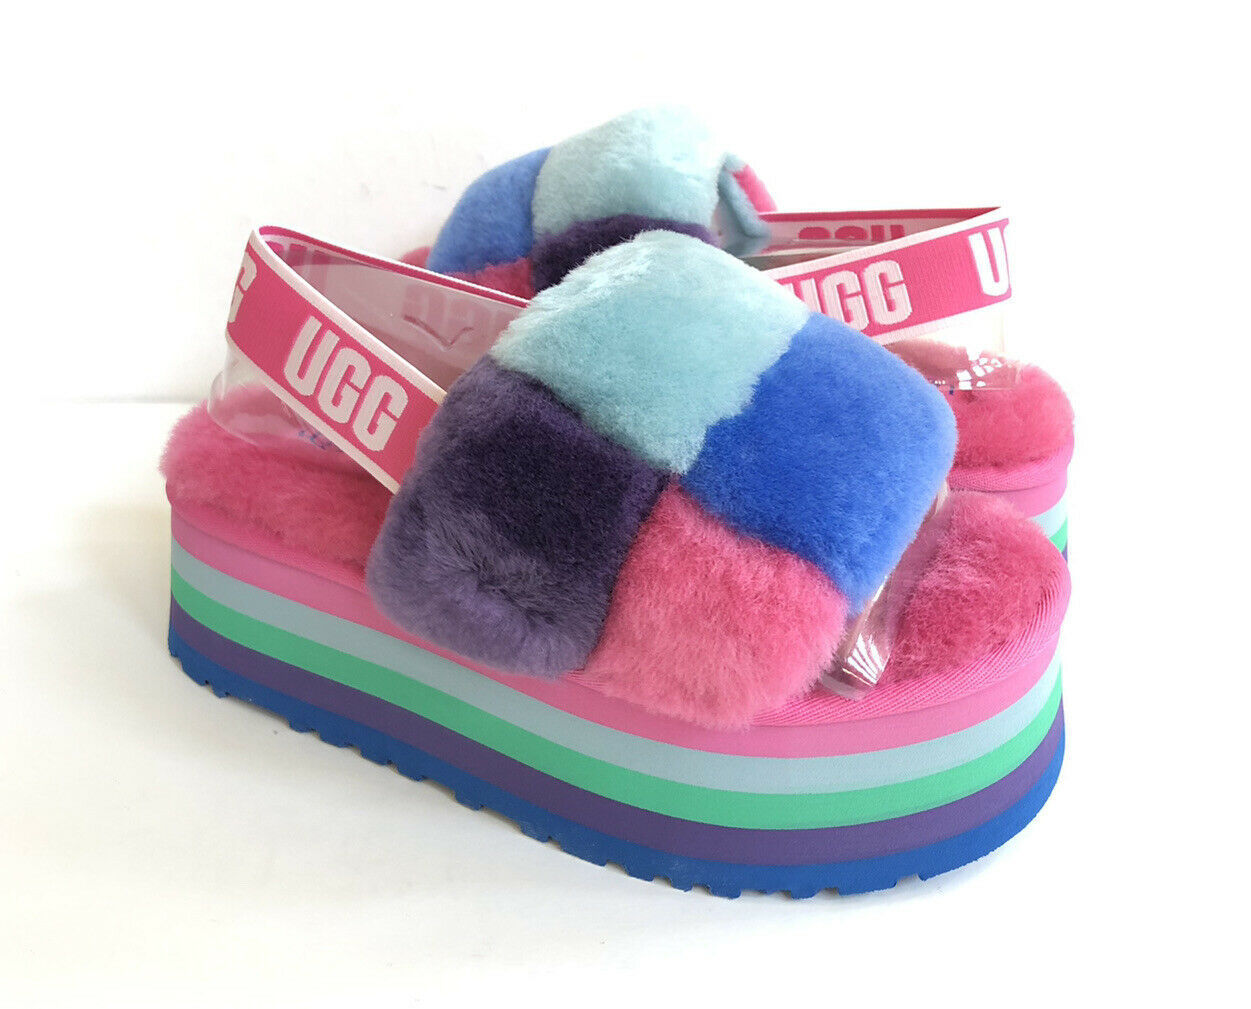 Primary image for UGG FLUFF YEAH DISCO CHECKER SLIDE PRIDE RAINBOW BLUE SANDAL US 7 / EU 38 / UK 5